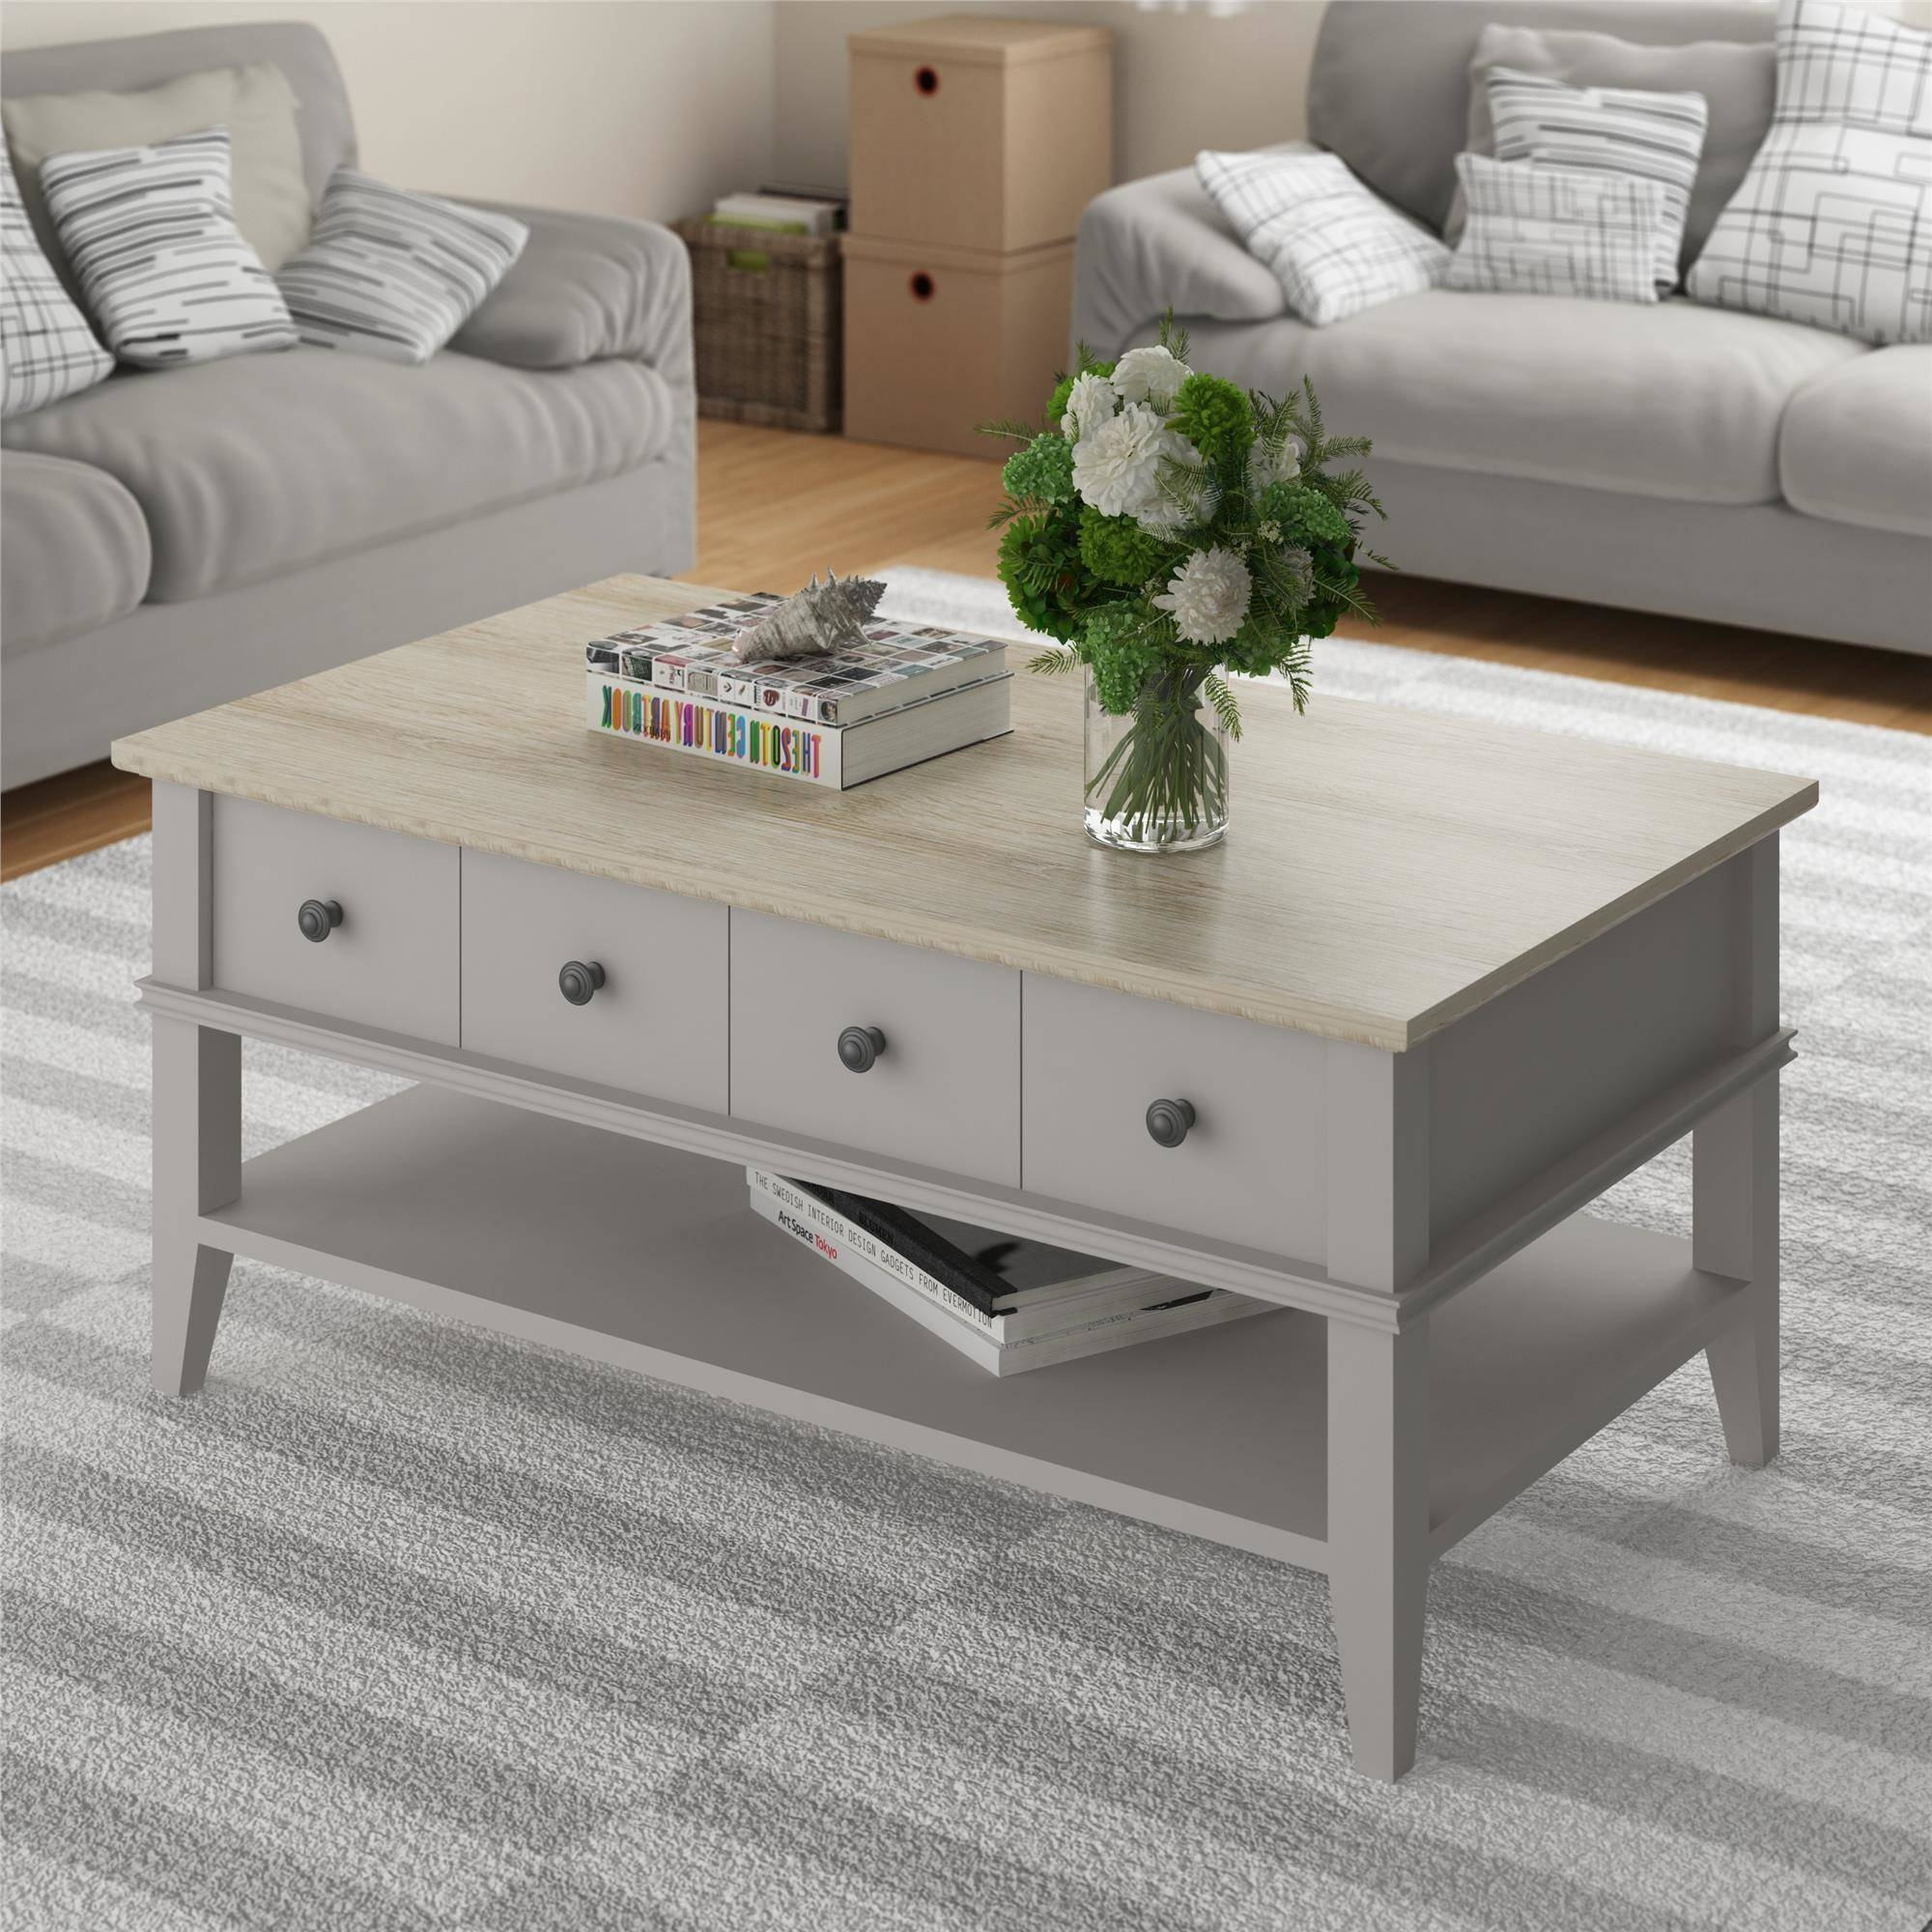 Ameriwood Home Newport Coffee Table, Light Gray/light Brown in Grey Coffee Tables (Image 3 of 30)